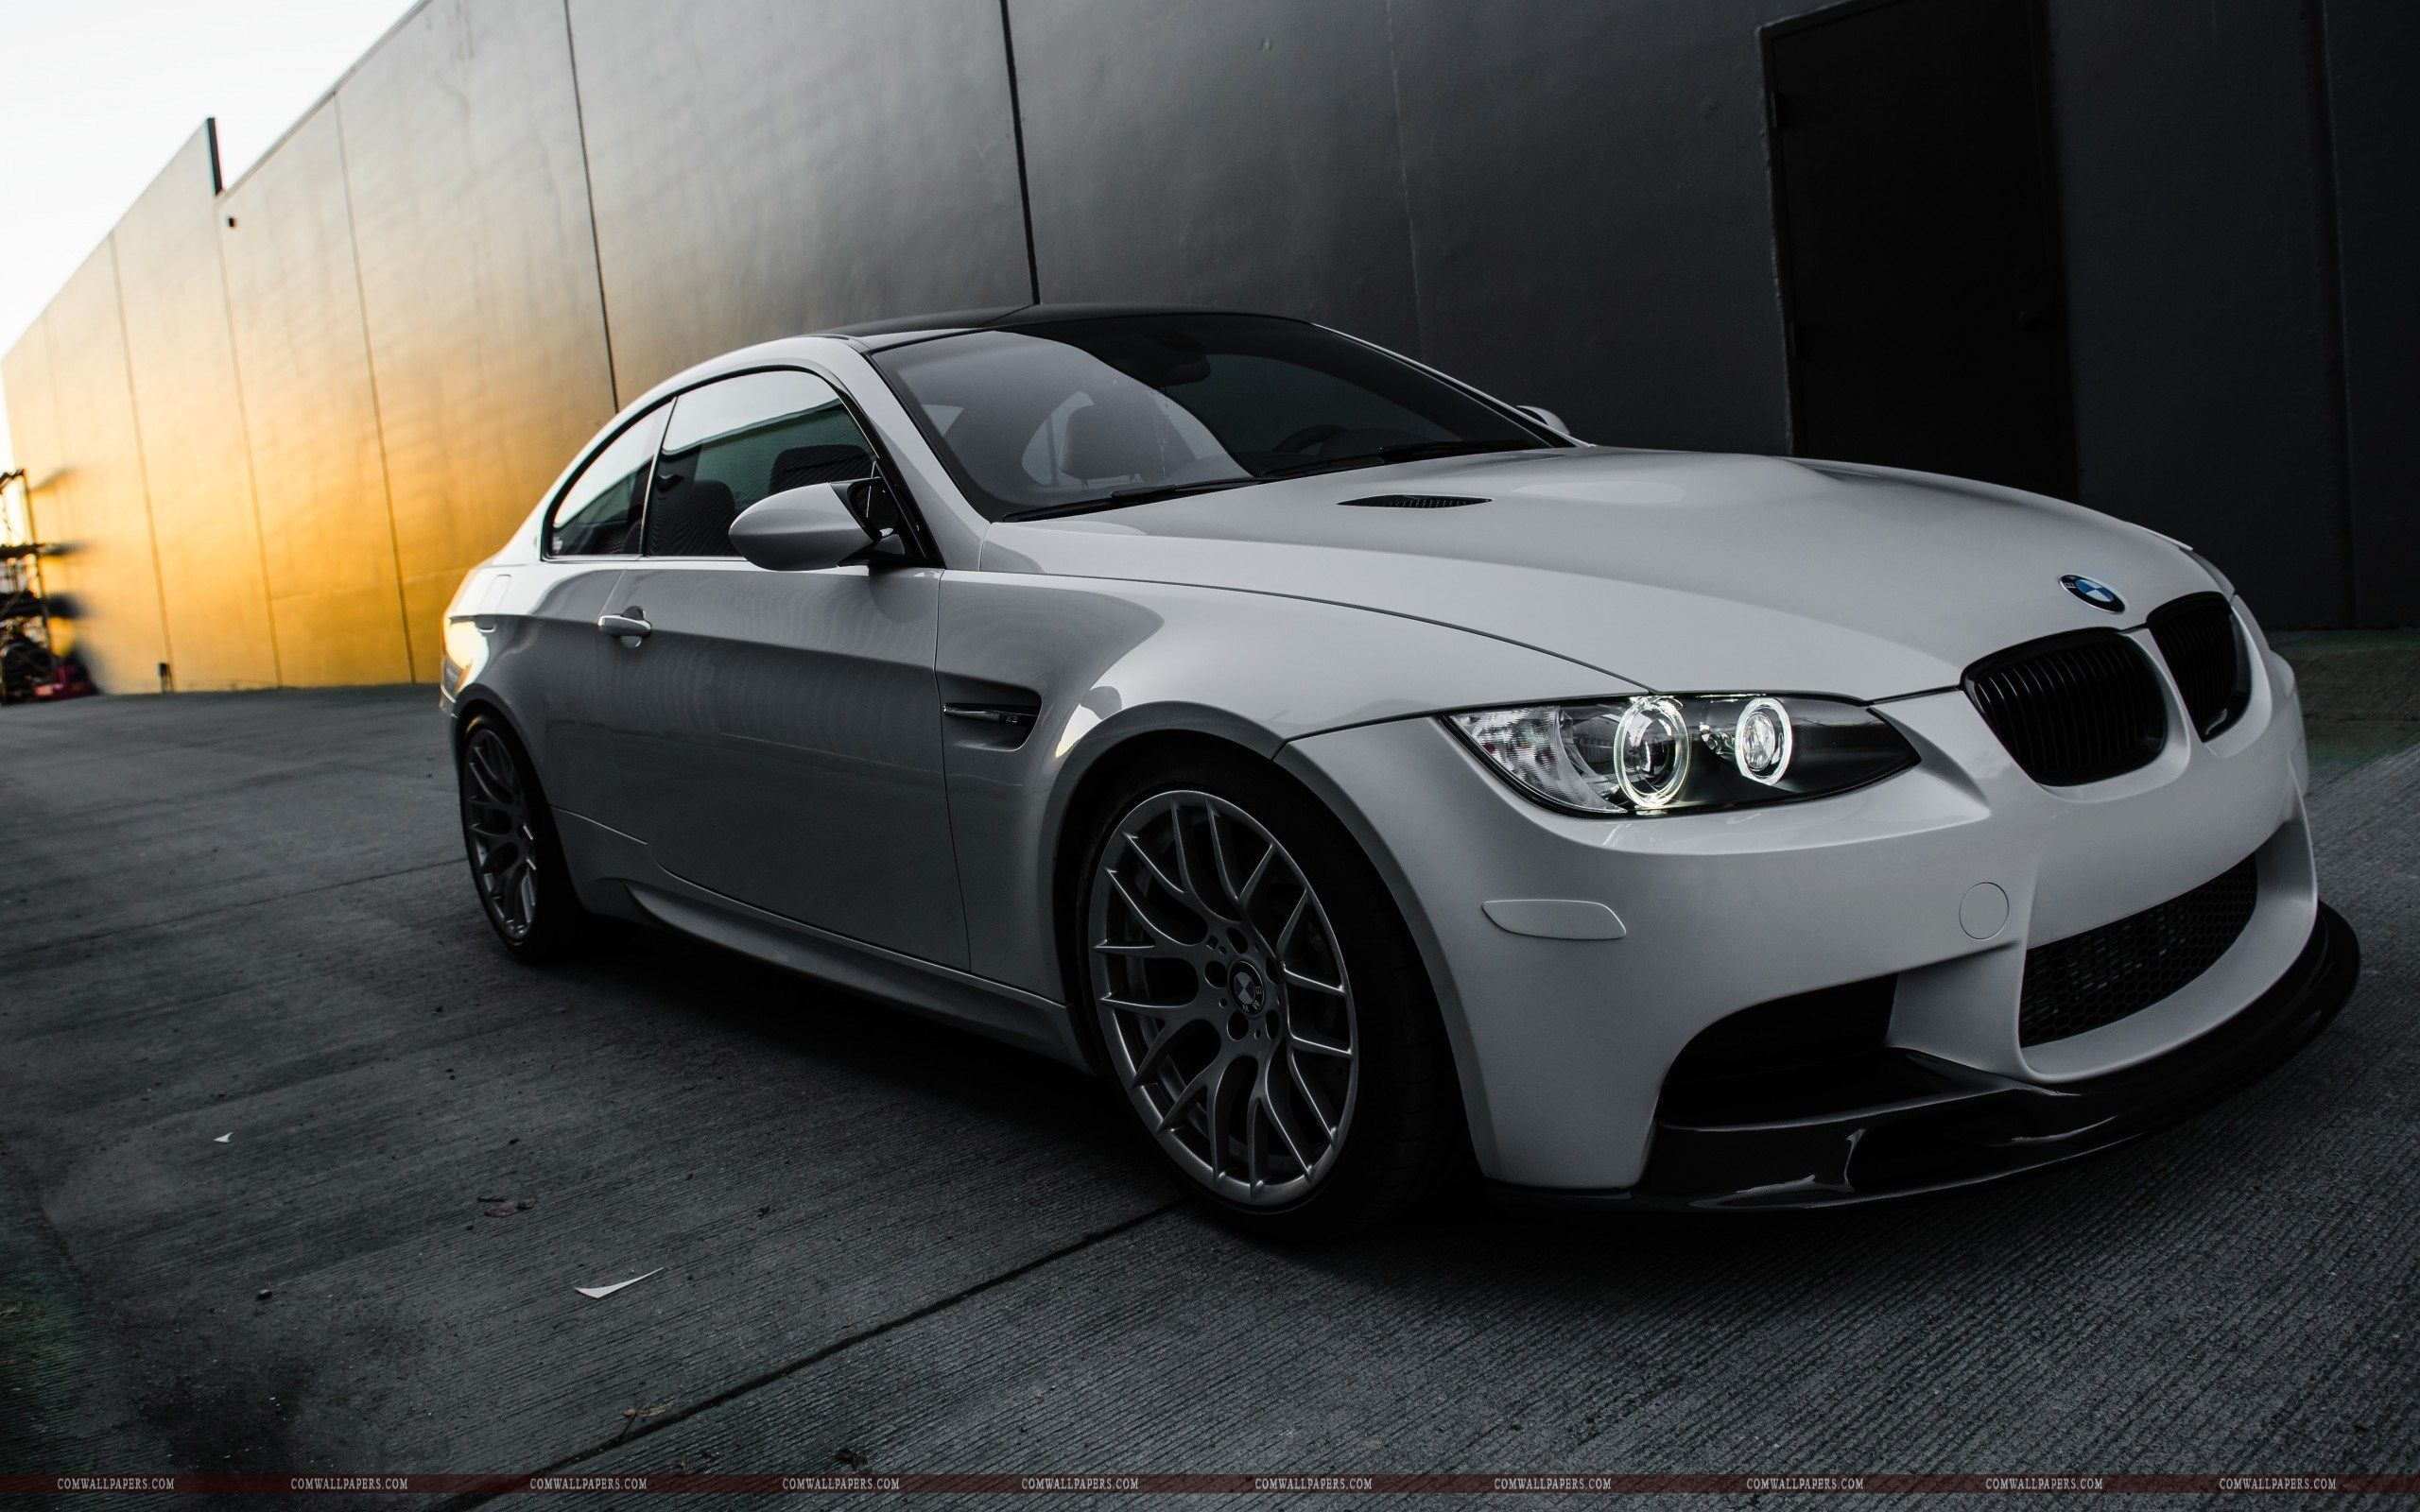 Bmw M3 E92 Coupe Hd Wallpaper With Images Bmw Wallpapers Bmw